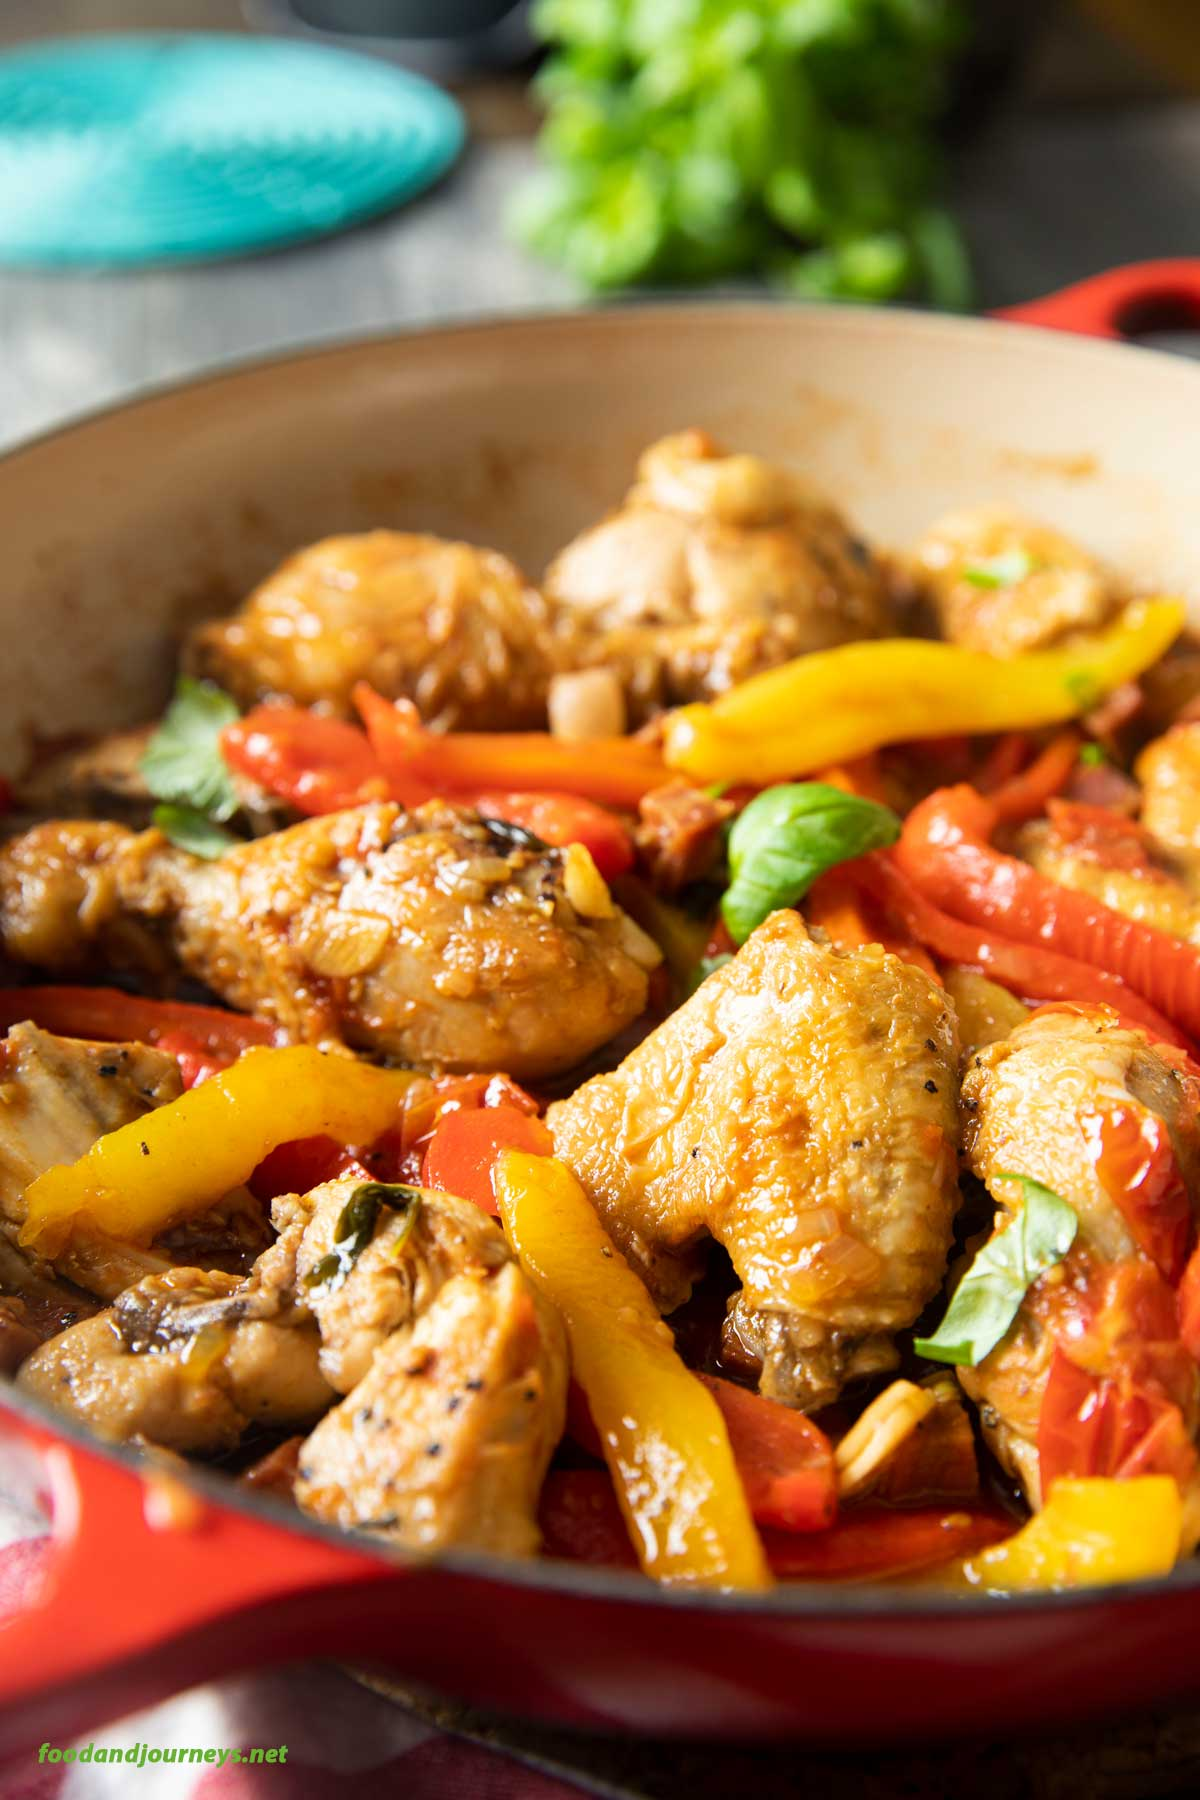 A closer shot of a pan of chicken alla romana, highlighting the peppers and juicy chicken.